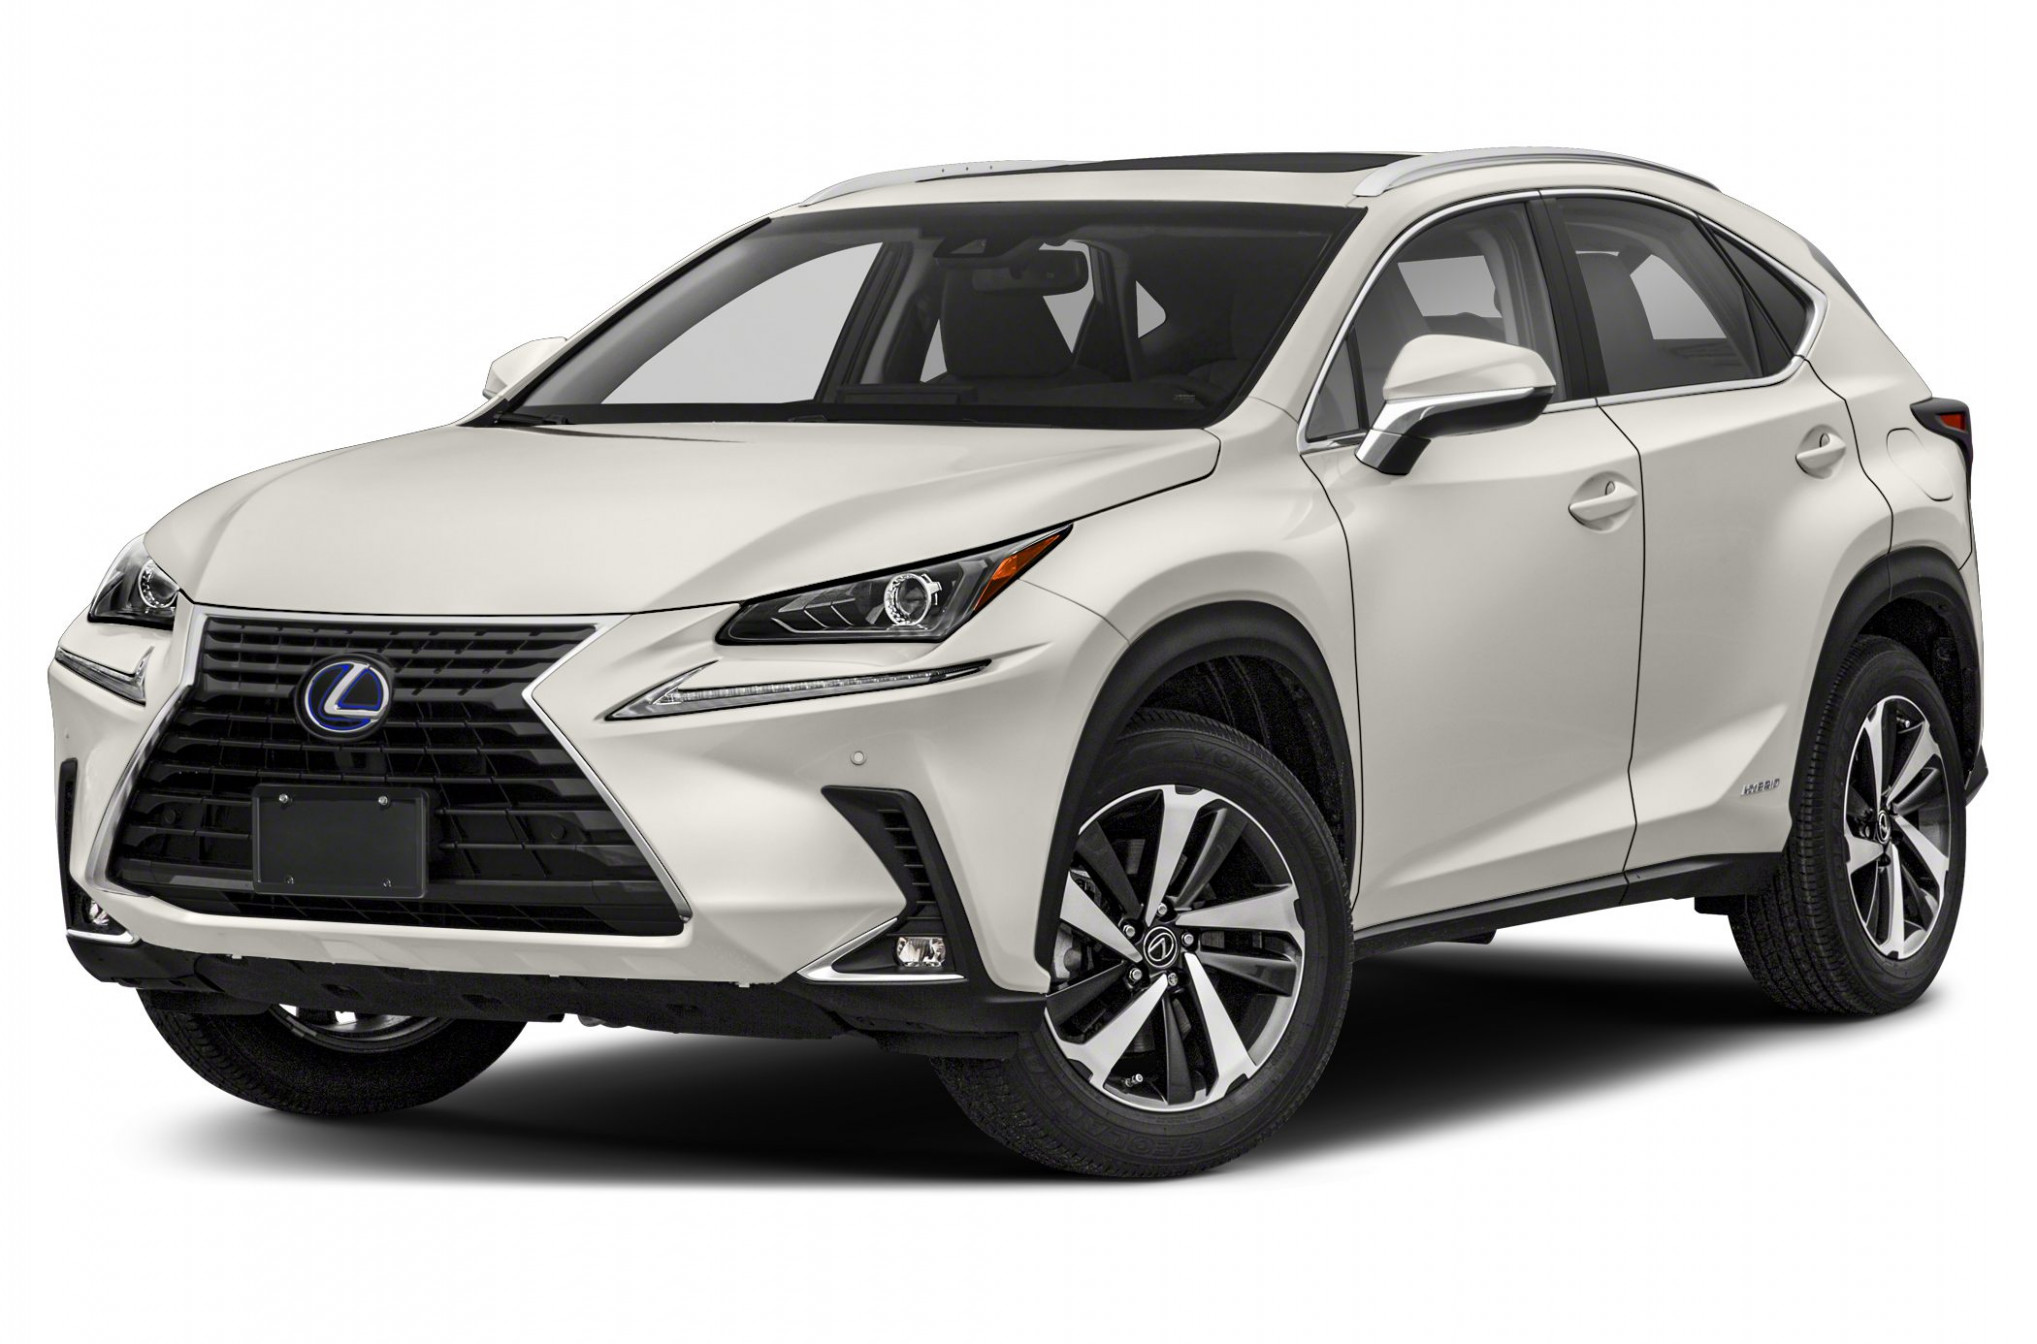 6 Lexus NX 6h Base 6dr All-wheel Drive Specs and Prices - 2020 lexus nx dimensions